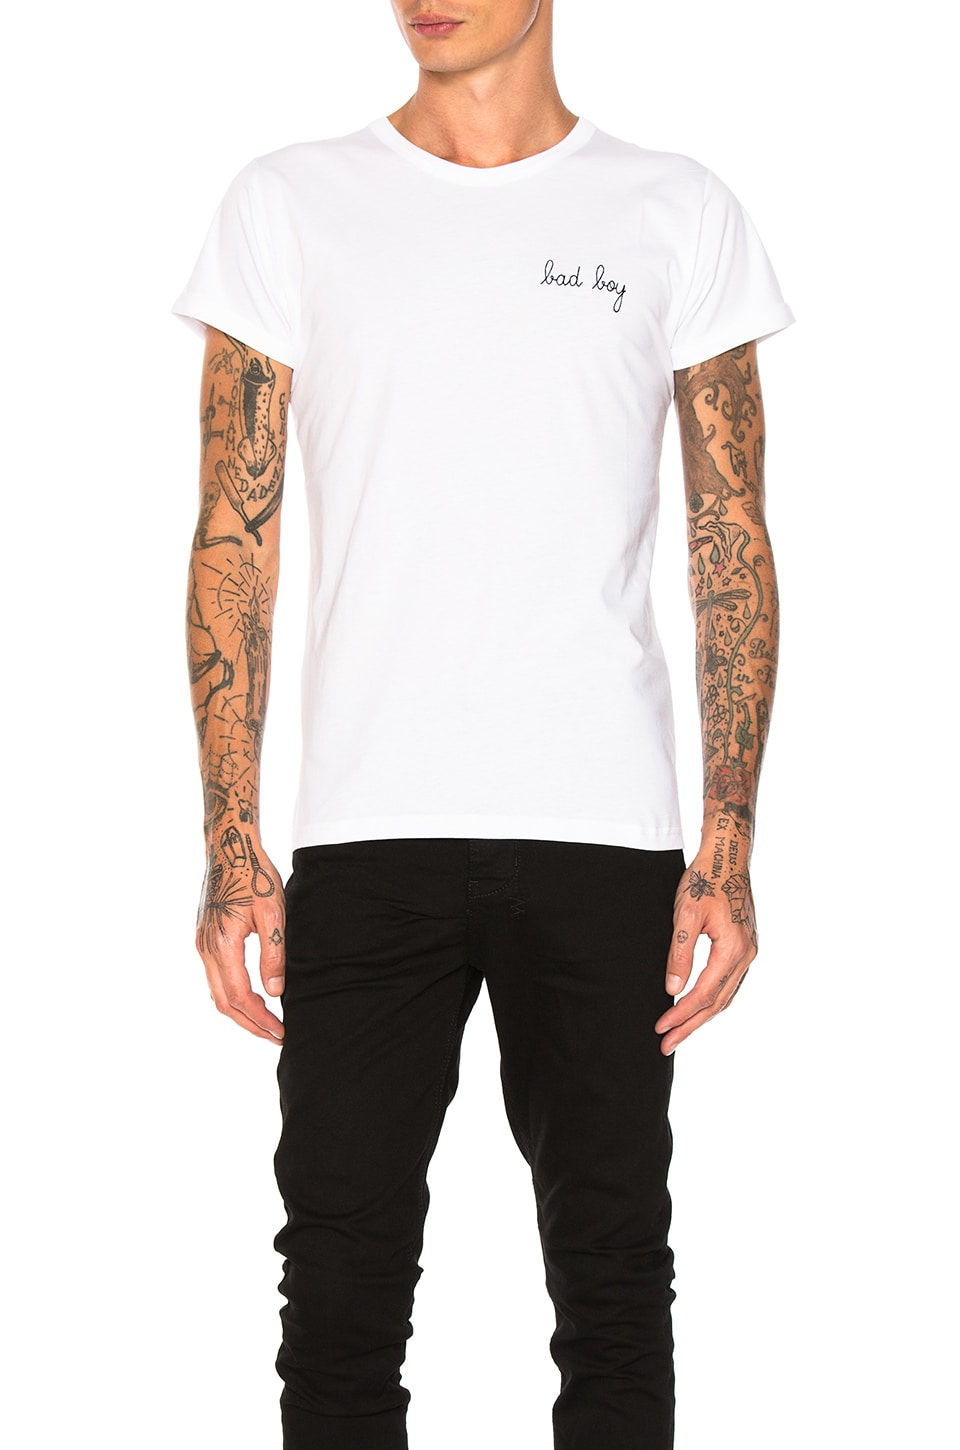 Bad Boy Tee by Maison Labiche